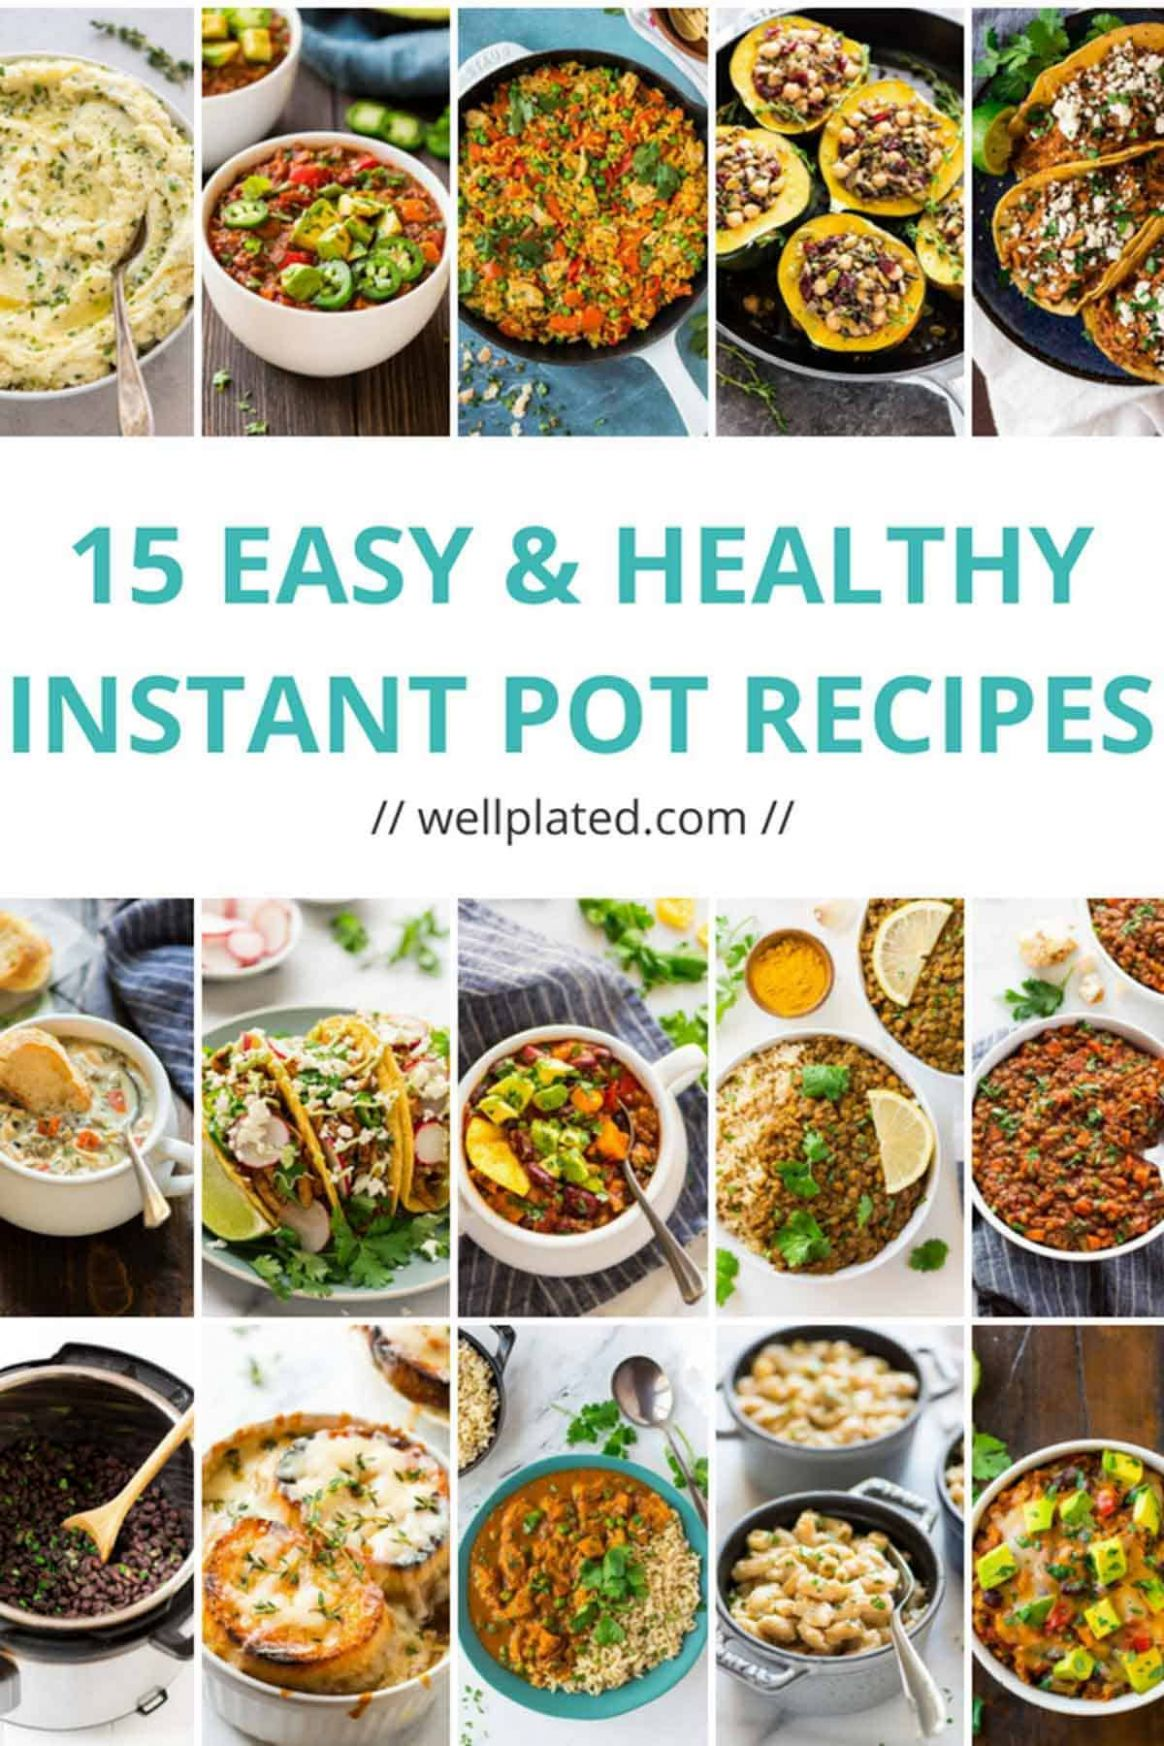 12 Healthy Instant Pot Recipes That Anyone Can Make - Simple Recipes Healthy Dinner